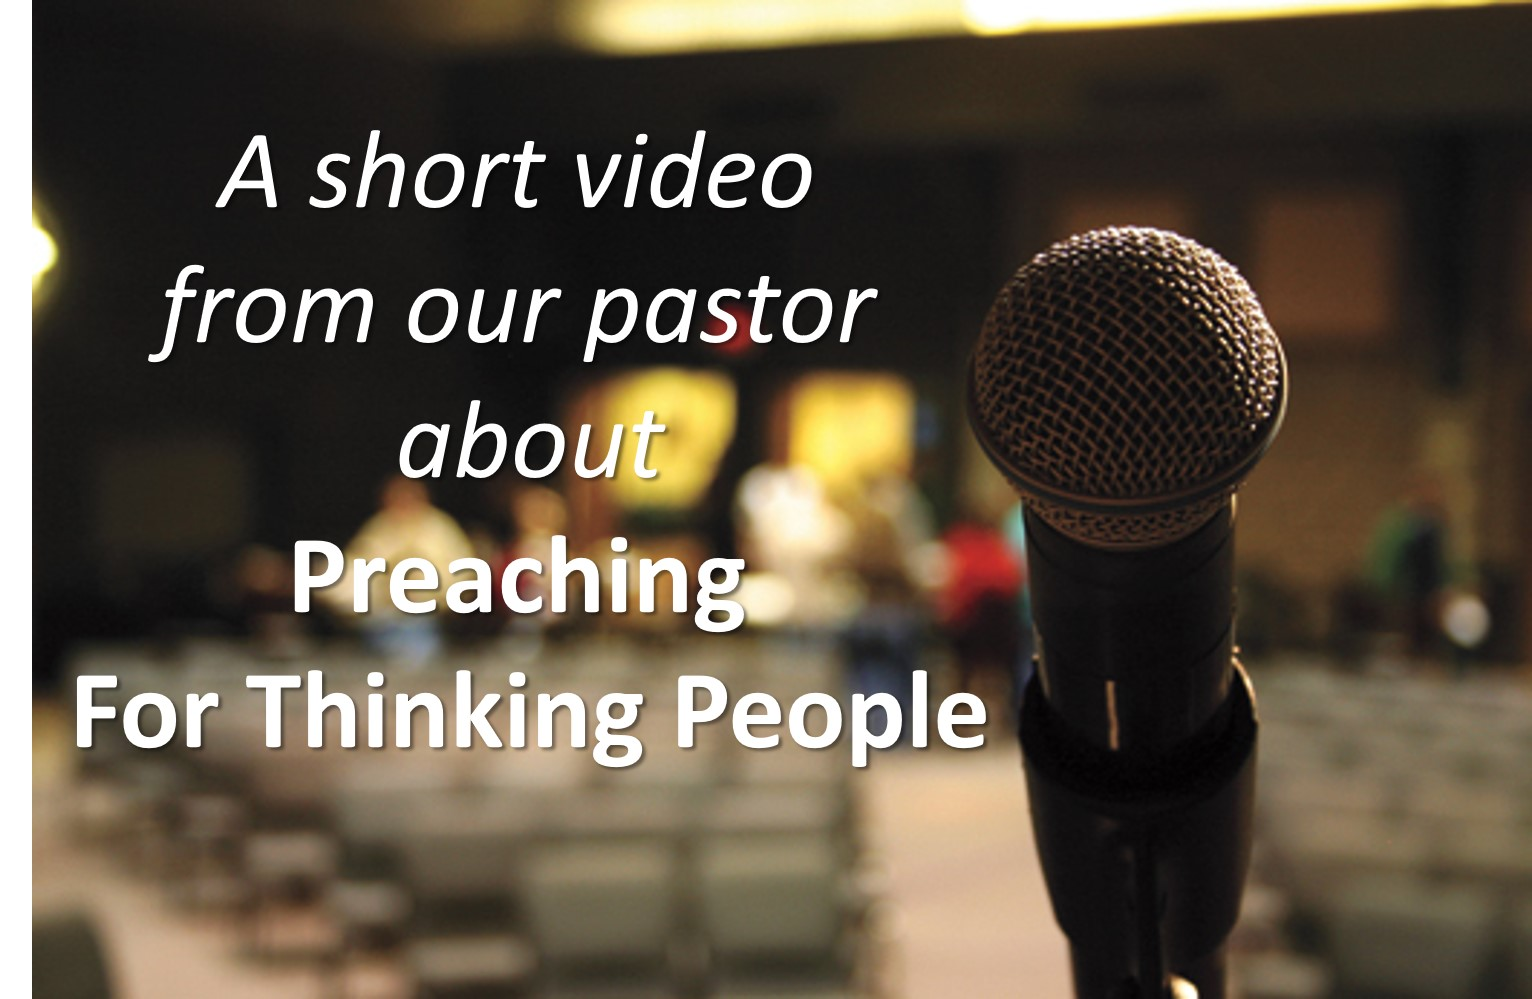 Sermons for thinking people | Generations Community Church